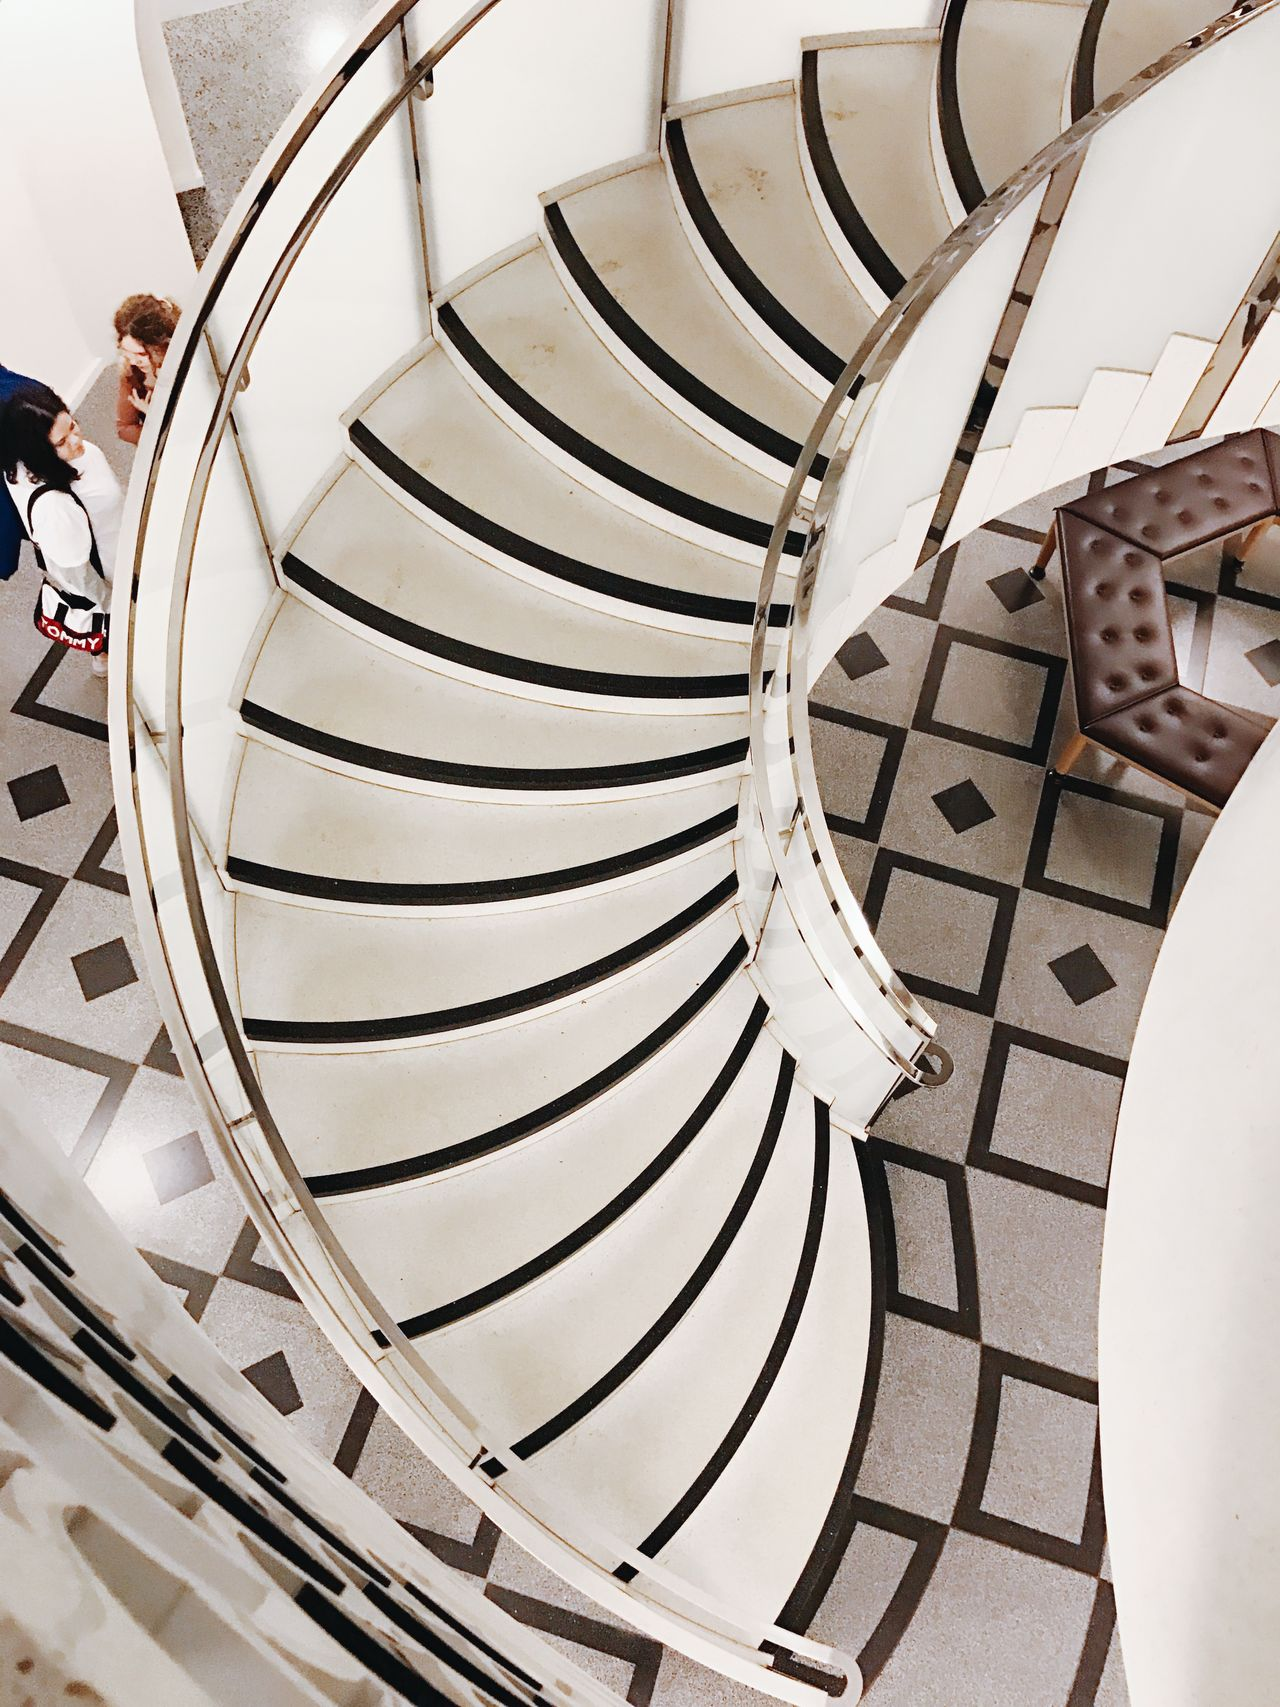 Architecture Architecture Blackandwhite Built Structure Curve Day Gallery Interior Design Minimalism Outdoors People Railing Spiral Spiral Staircase Staircase Stairs Steps Steps And Staircases